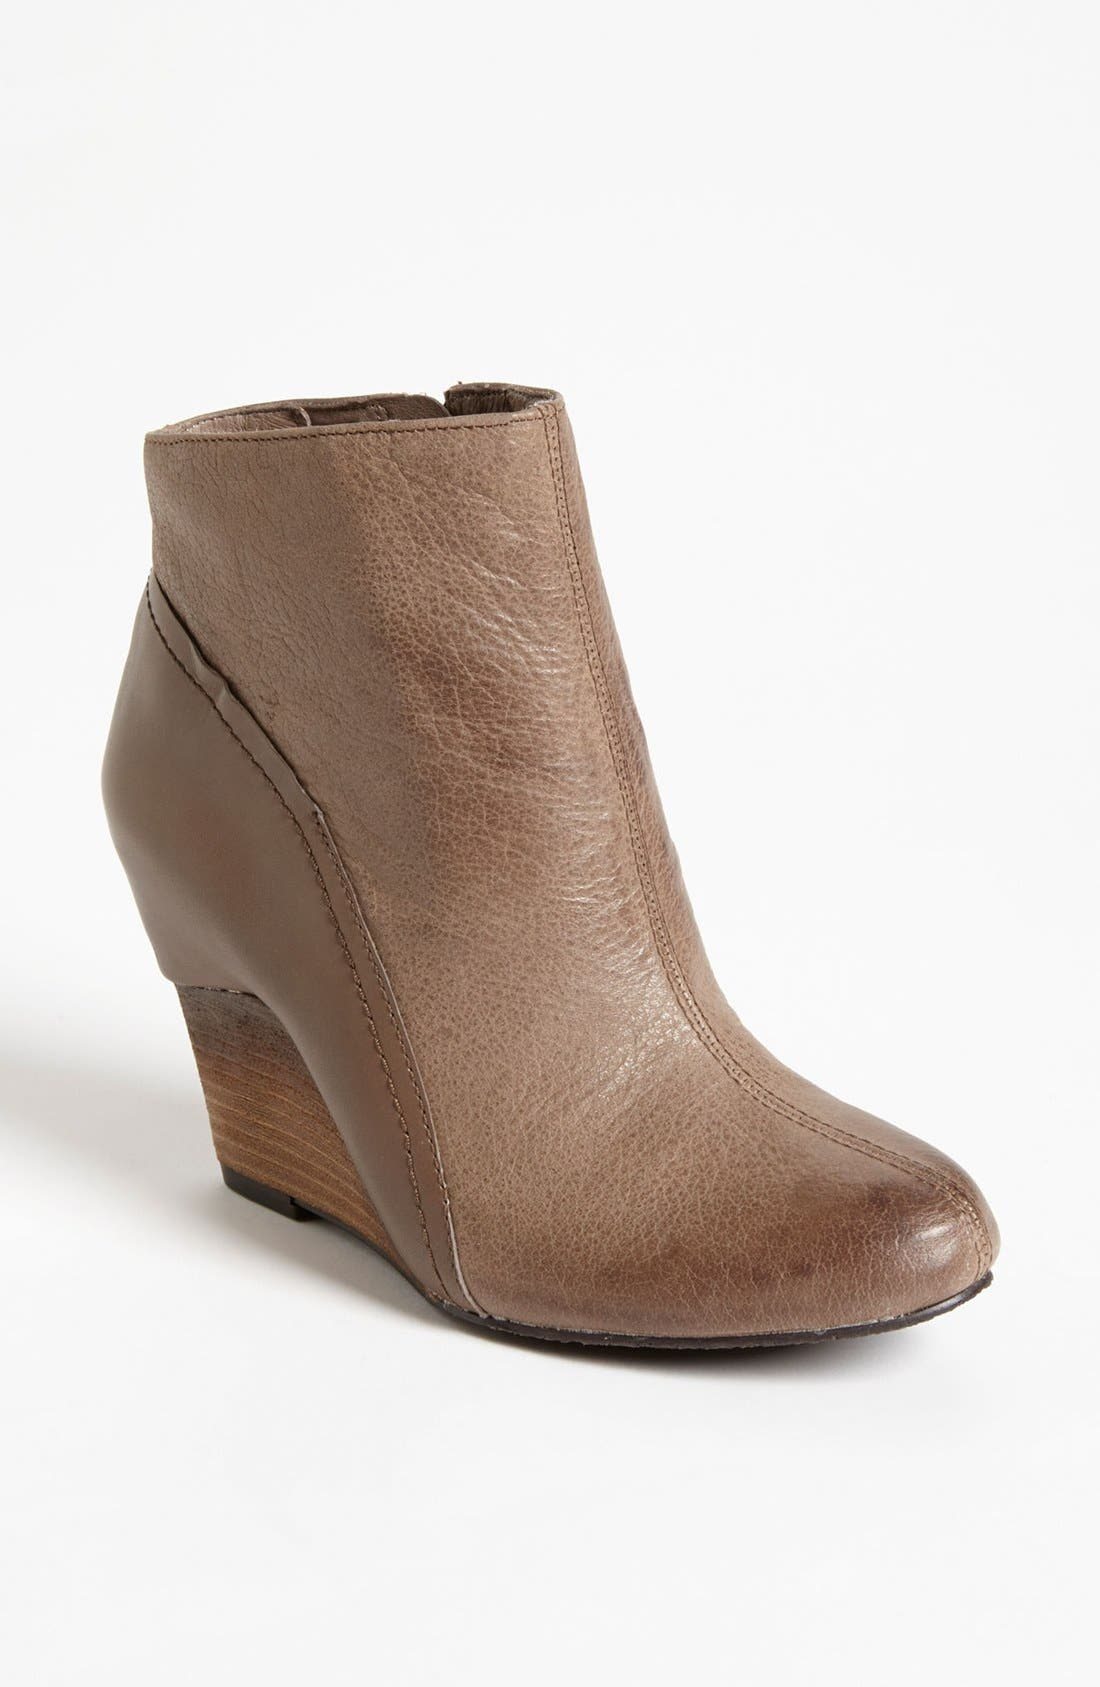 Alternate Image 1 Selected - Vince Camuto 'Hillari' Boot